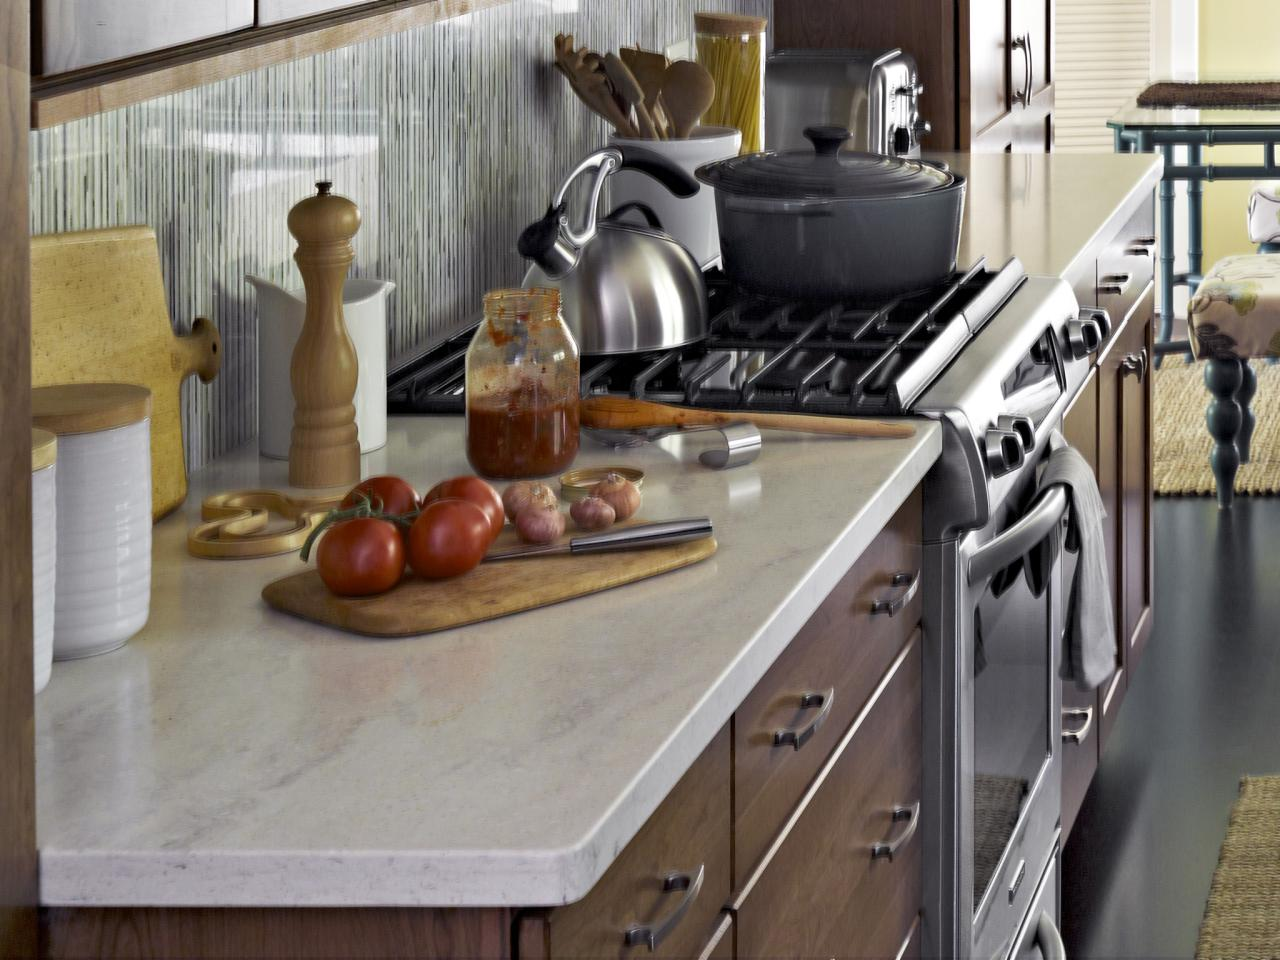 Warm Paint Colors For Kitchens Pictures Ideas From Hgtv: Color Ideas For Painting Kitchen Cabinets + HGTV Pictures